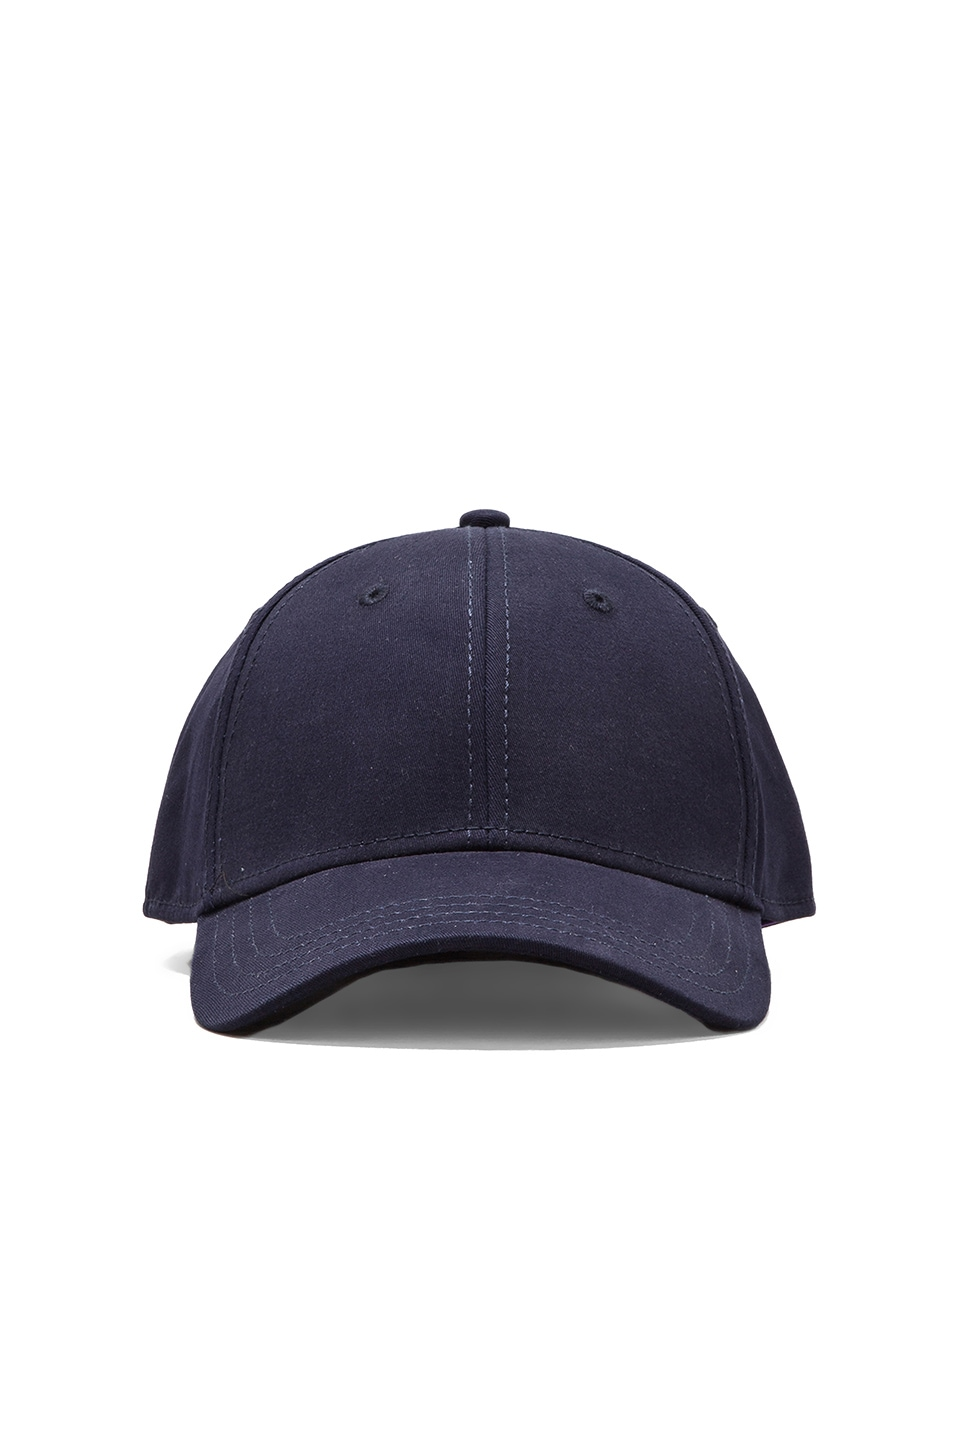 Gents Co. Director's Cap en Marine